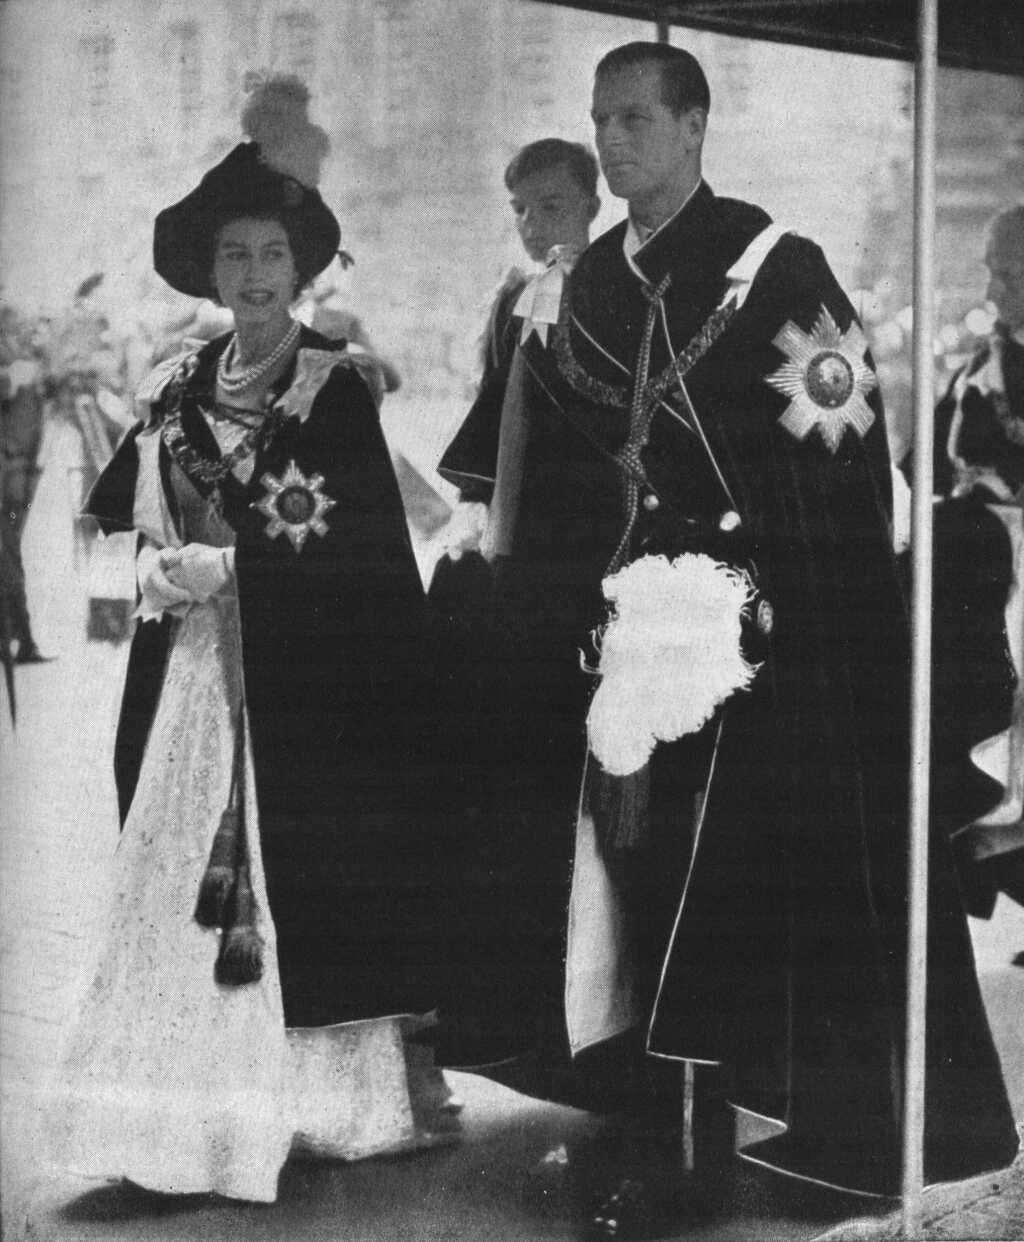 1953 Order of the Garter Service Royal family trees